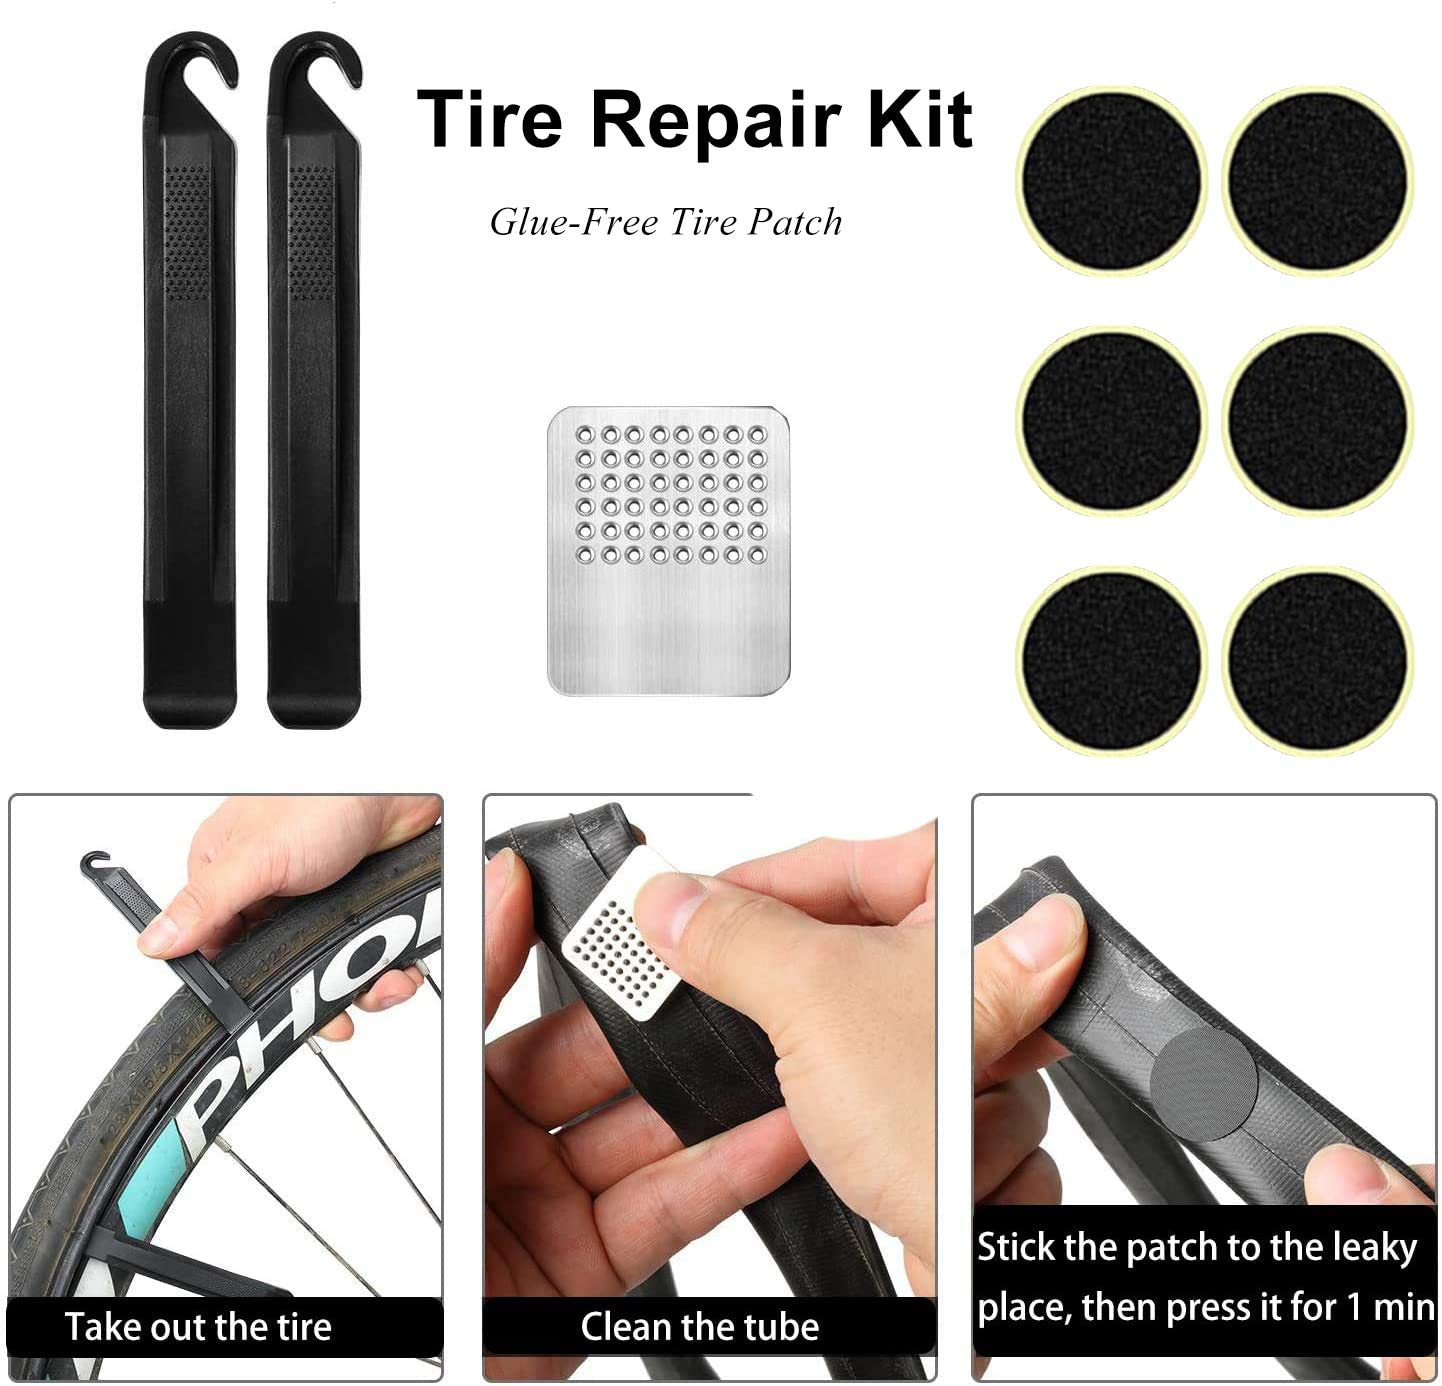 Ball Pump Needle//Frame Mount Bike Pump,Aluminum Alloy Portable Mini Bicycle Tire Pump,Super Fast Tyre Inflation Compatible with Universal Presta and Schrader Valve Frame Mounted Air Pump for Road